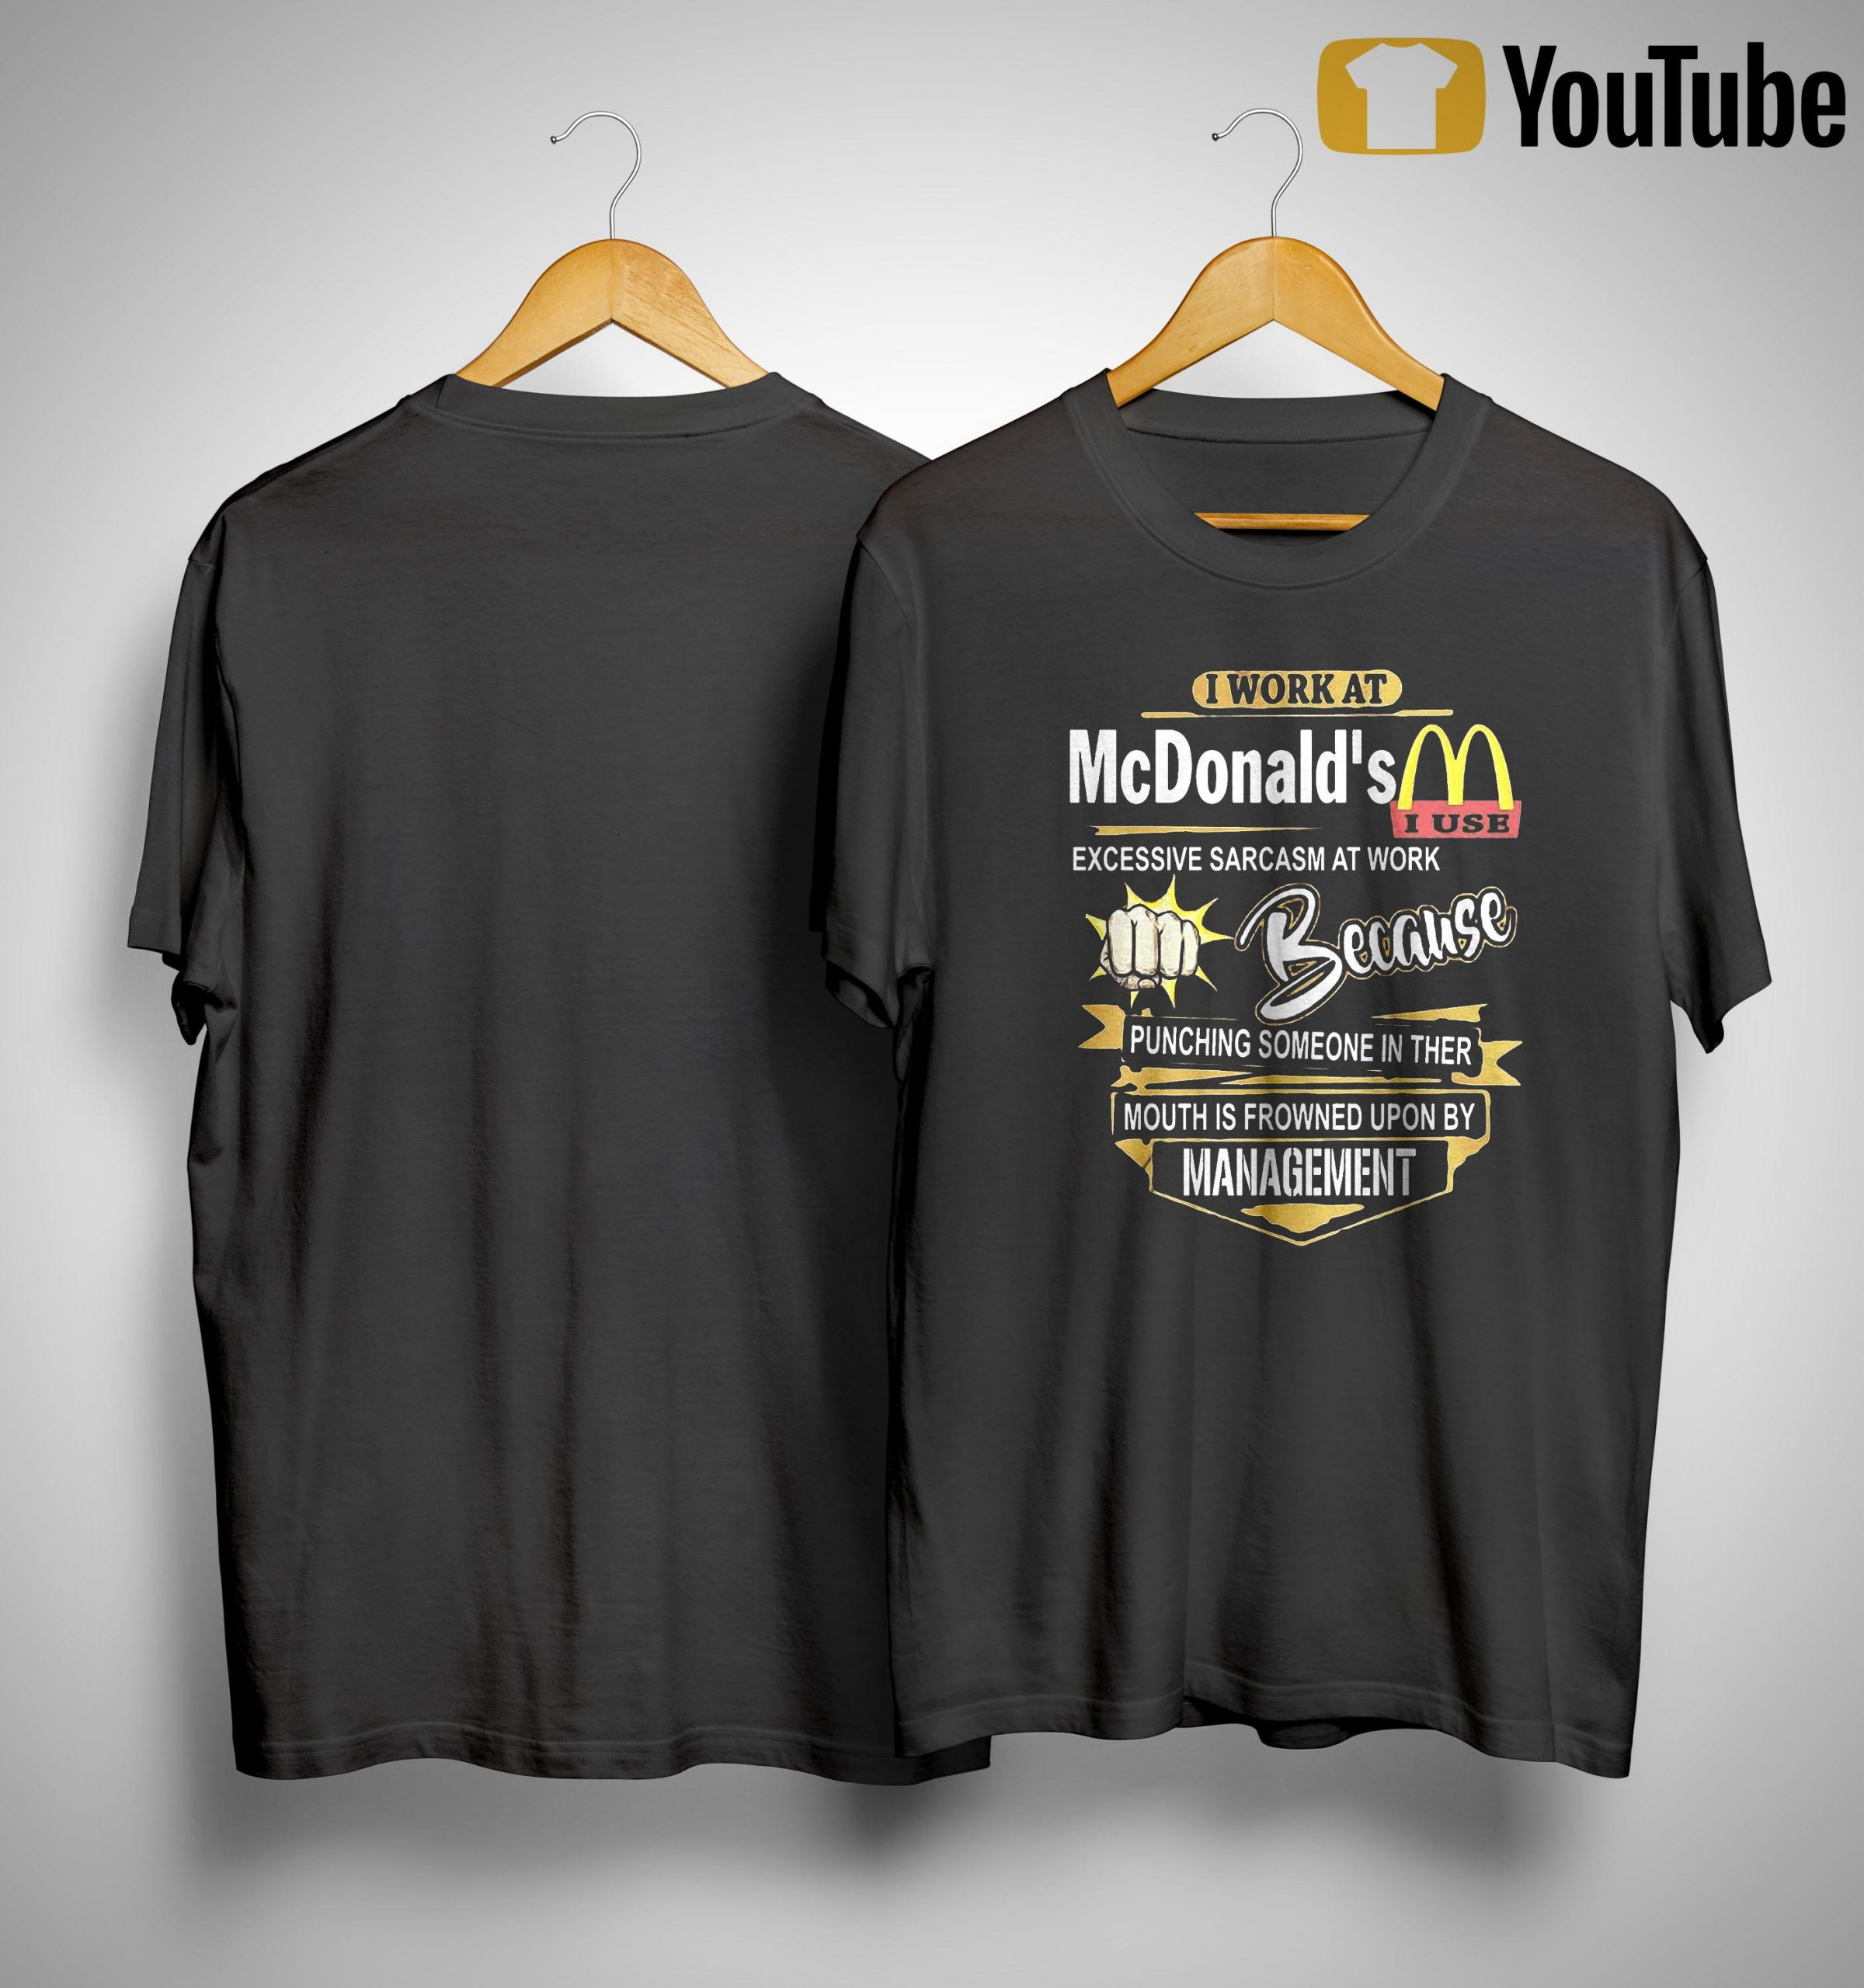 I Work At Mcdonald's I Use Excessive Sarcasm At Work Shirt